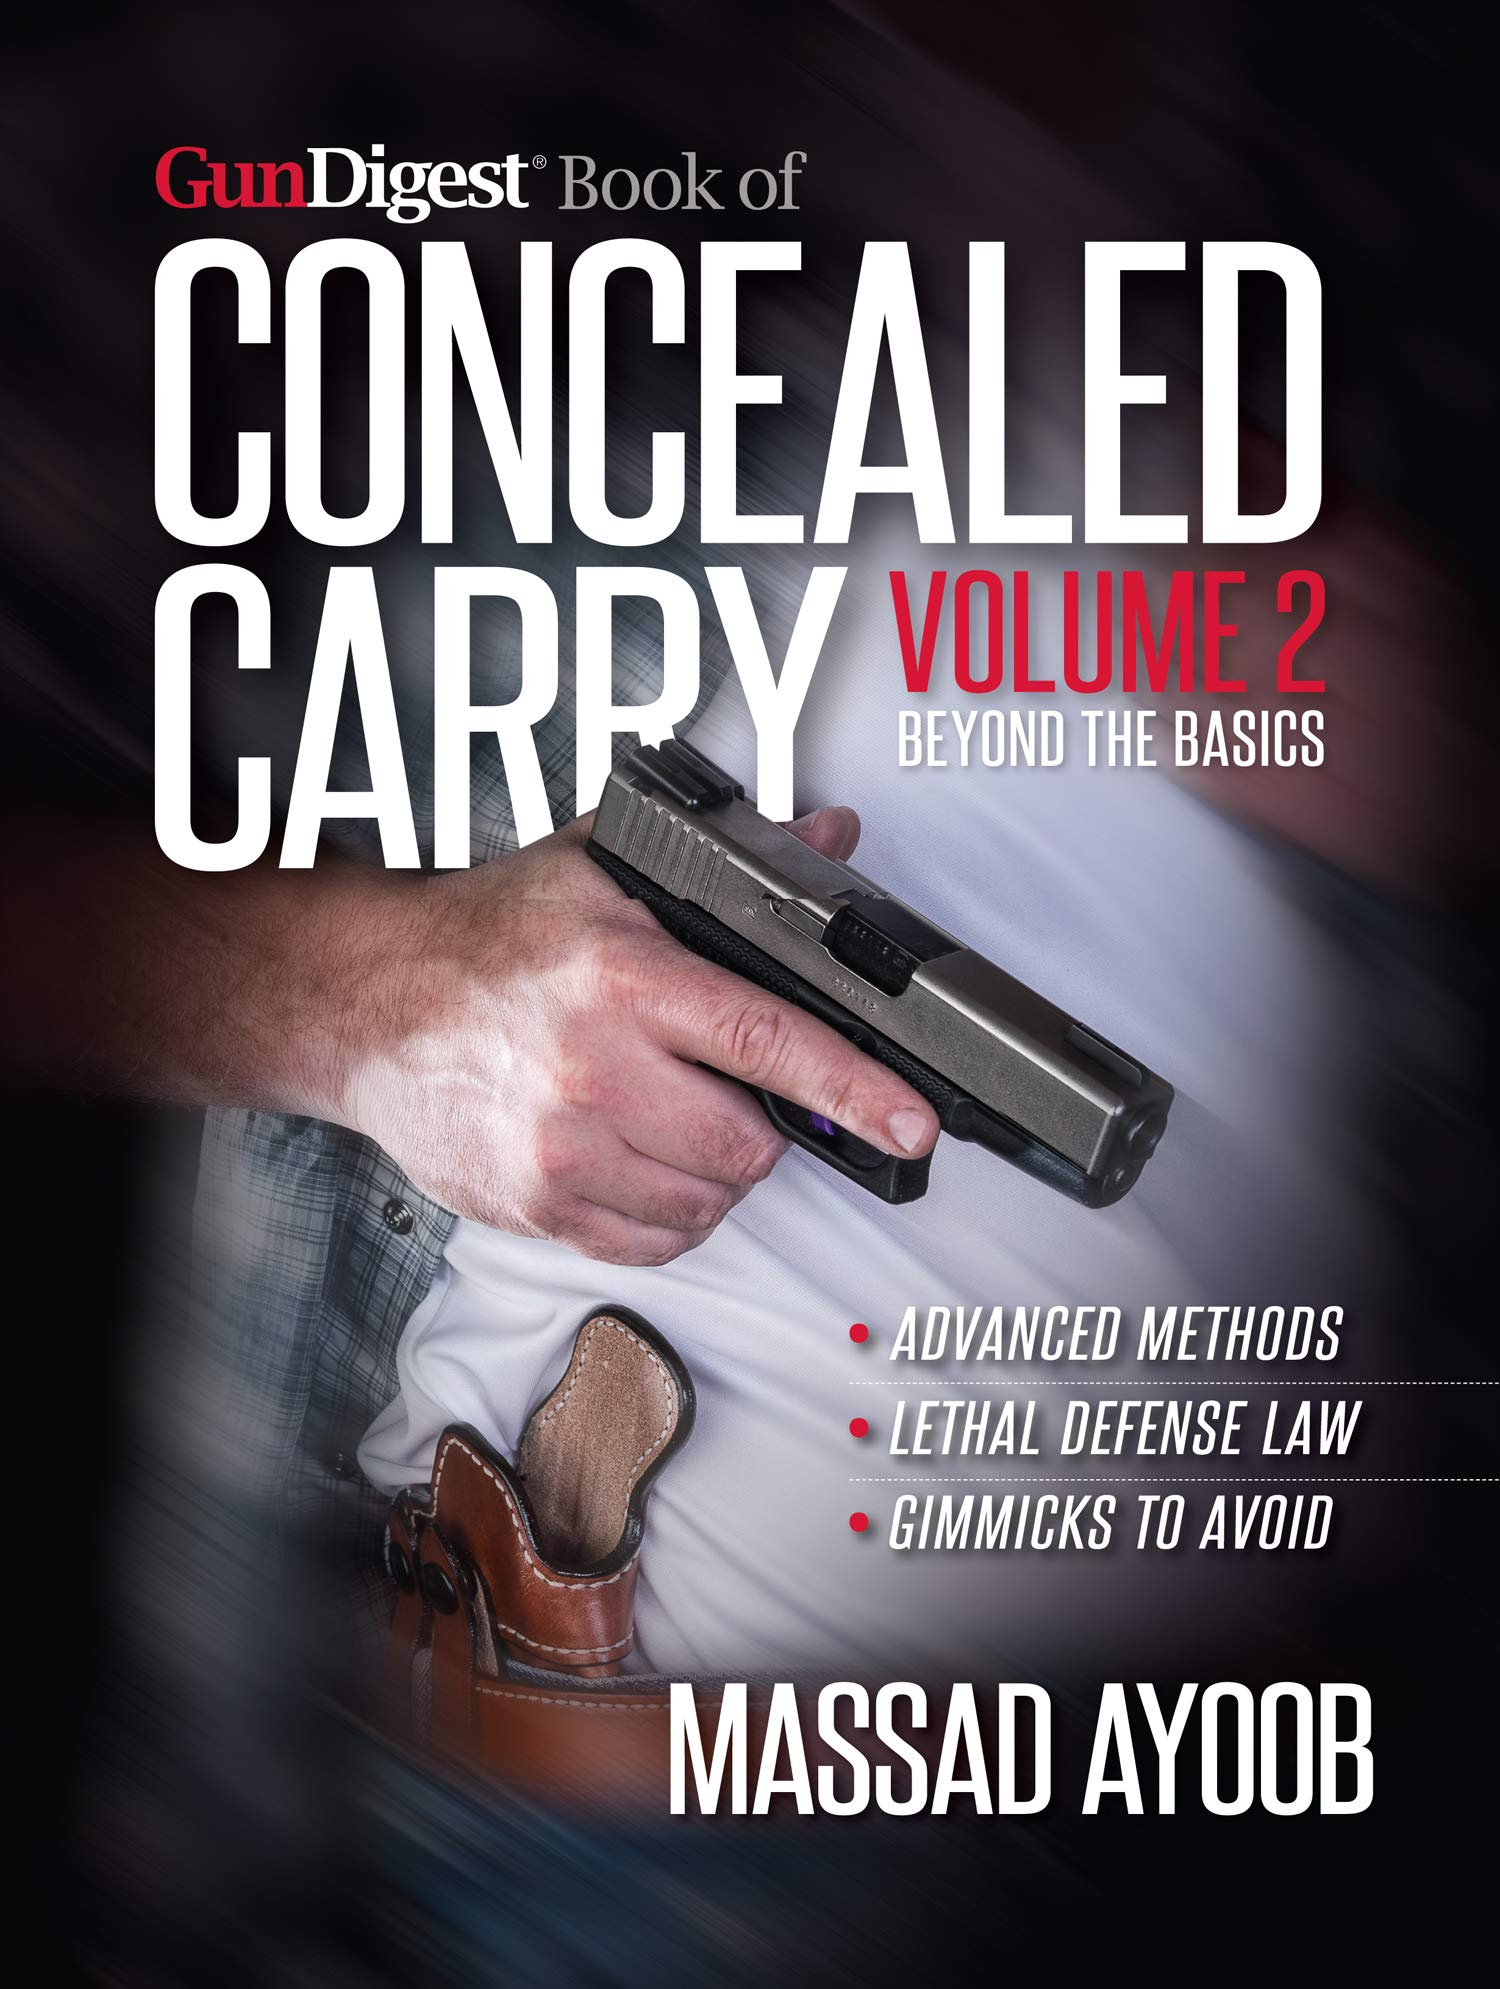 Image OfGun Digest Book Of Concealed Carry Volume II: Beyond The Basics